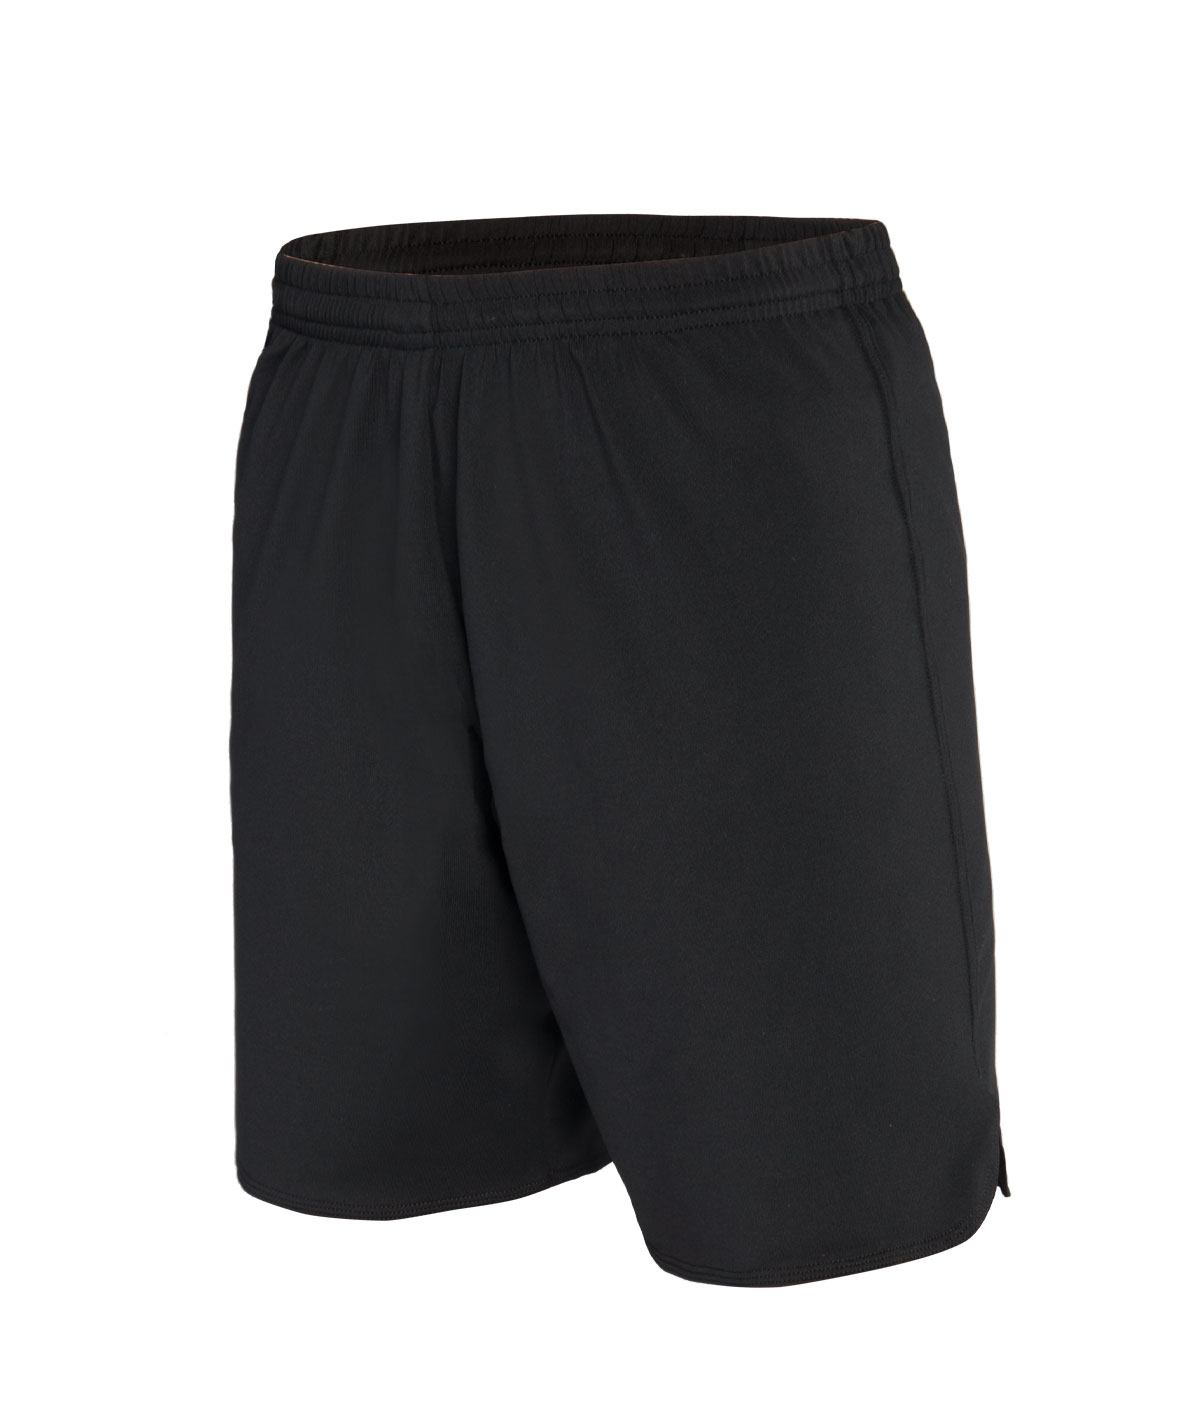 GK All Star Mens Black DryTech Cheer Shorts